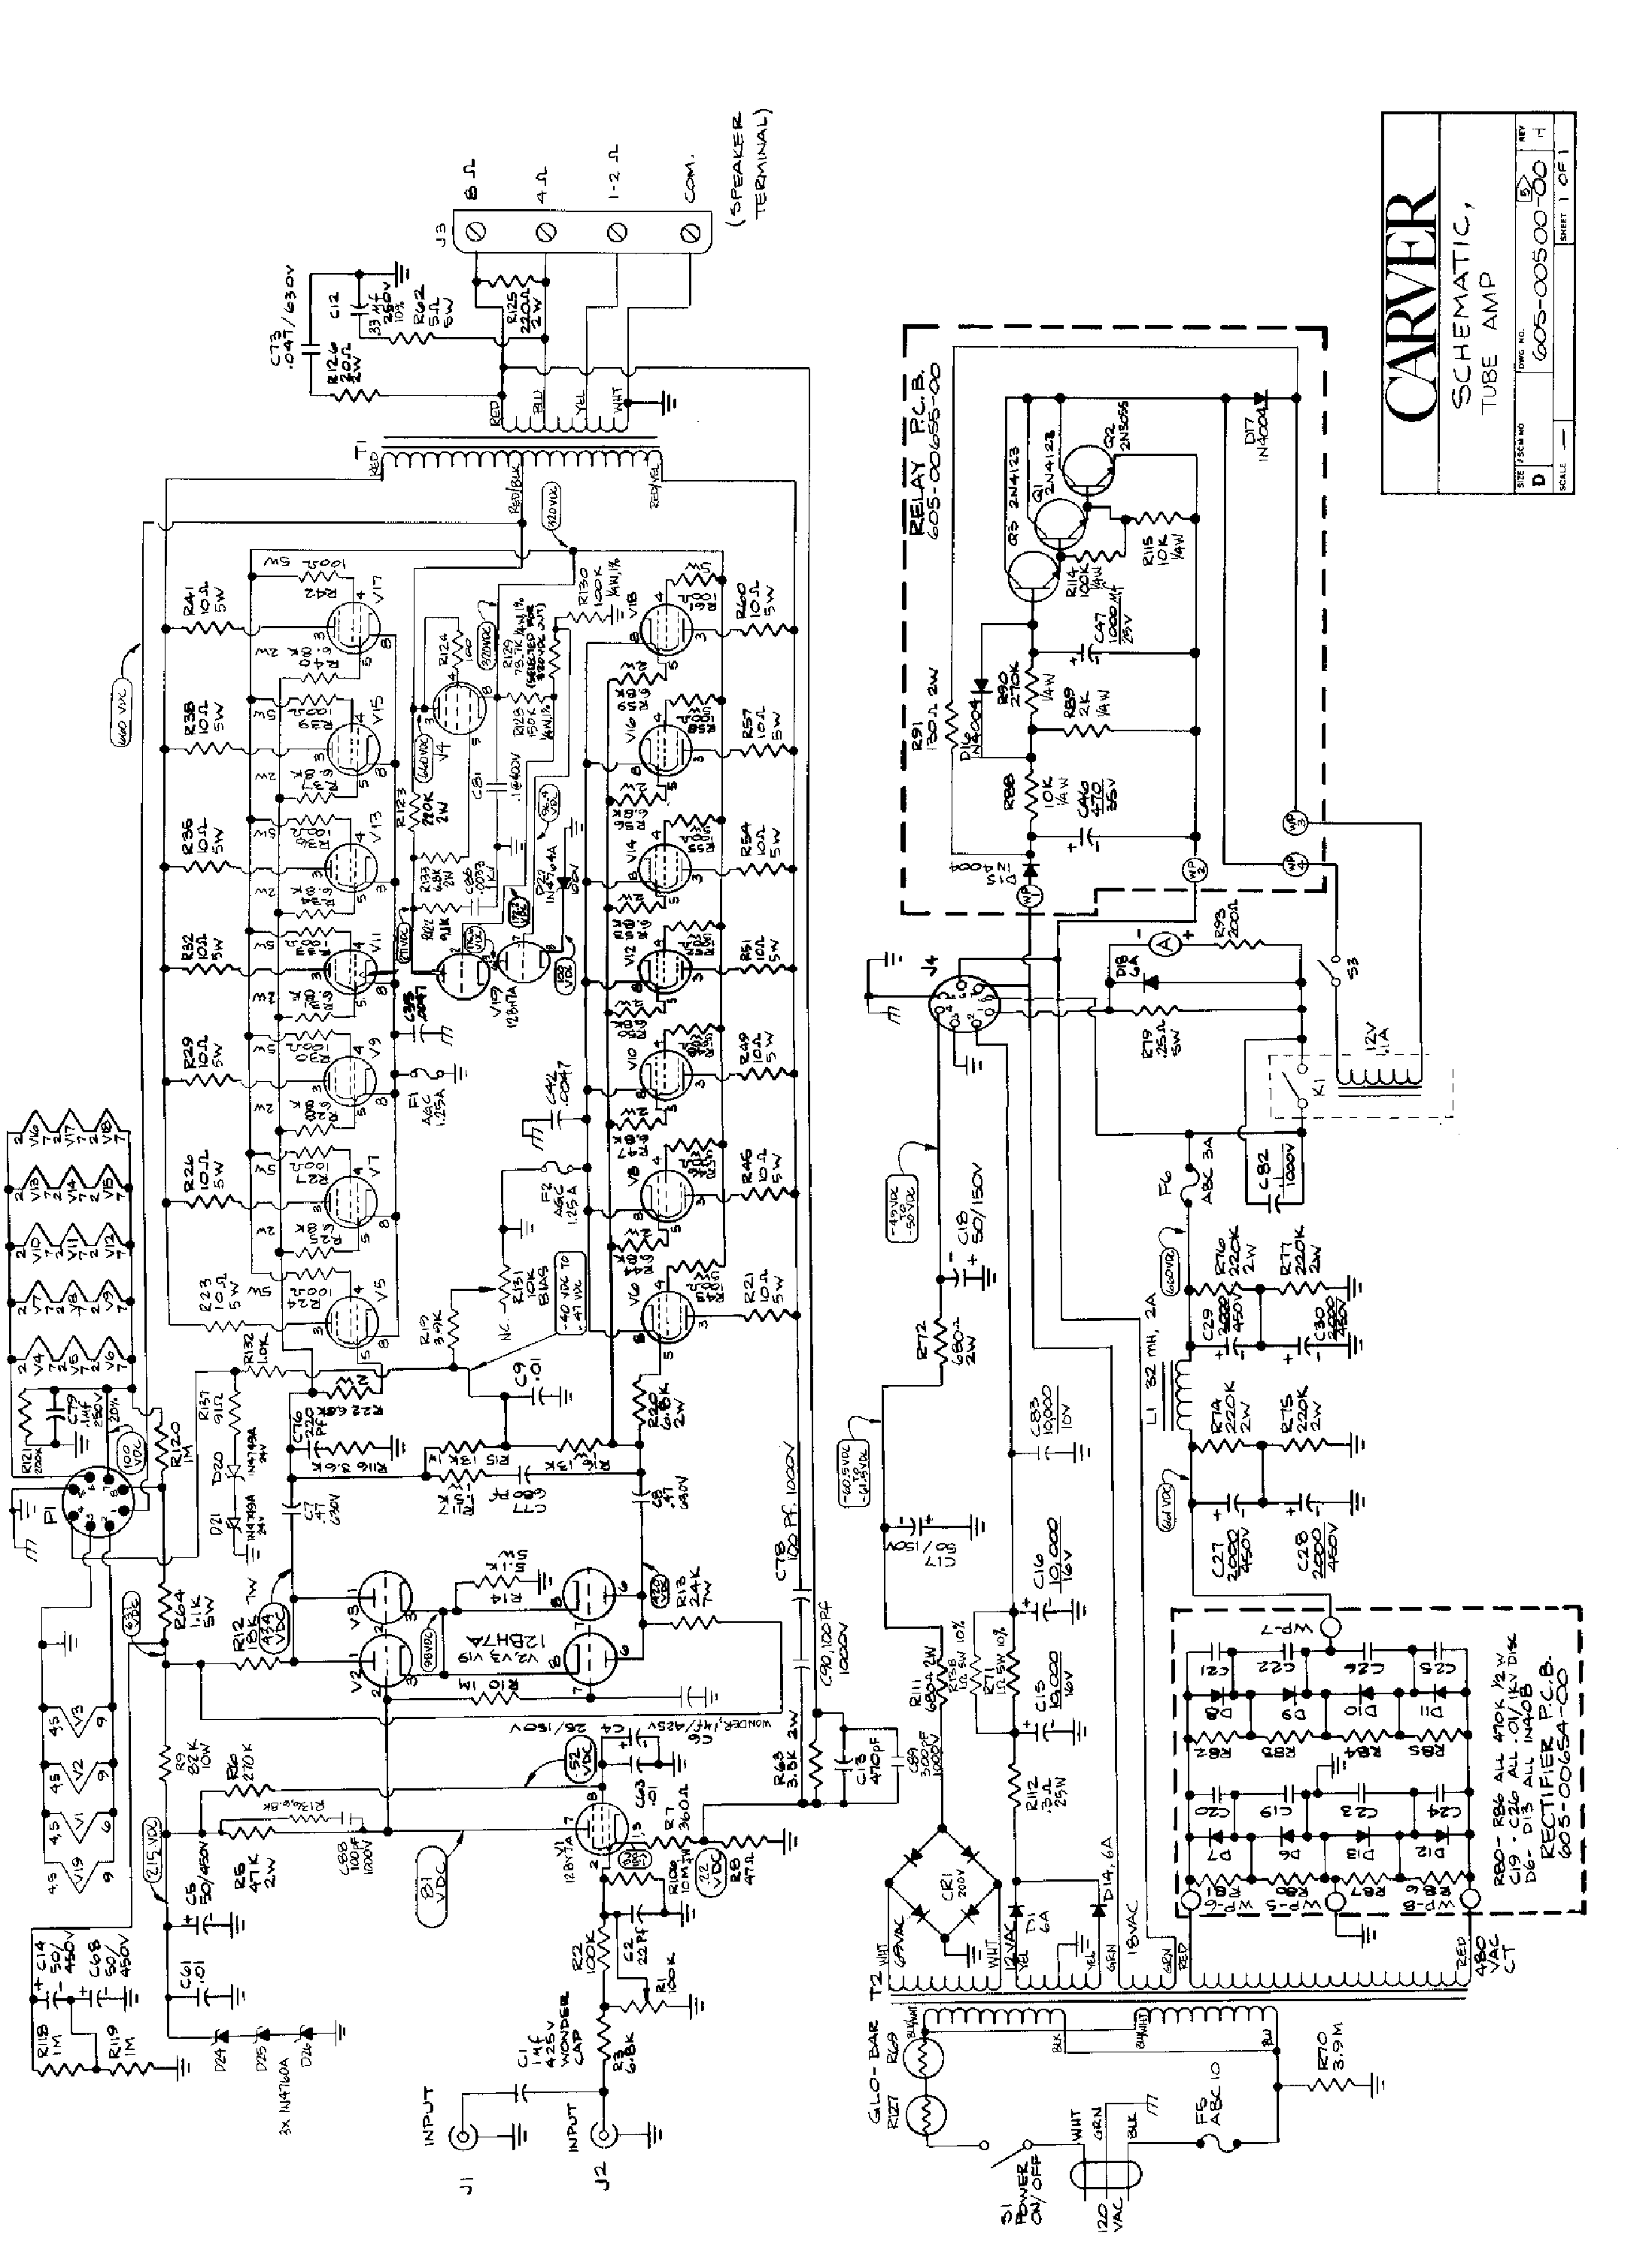 Wiring Aprilaire 700 Humidifier To York Tg9 Furnace additionally Carver Electrical Ac Wiring Diagram in addition 557031 Weil Mclain Cgx C Wire Options Low Water Cutoff Disconnected besides Isolation Relay For Thermostat moreover Bmw E46 Alternator Wiring Diagram. on electric furnace thermostat wiring diagram